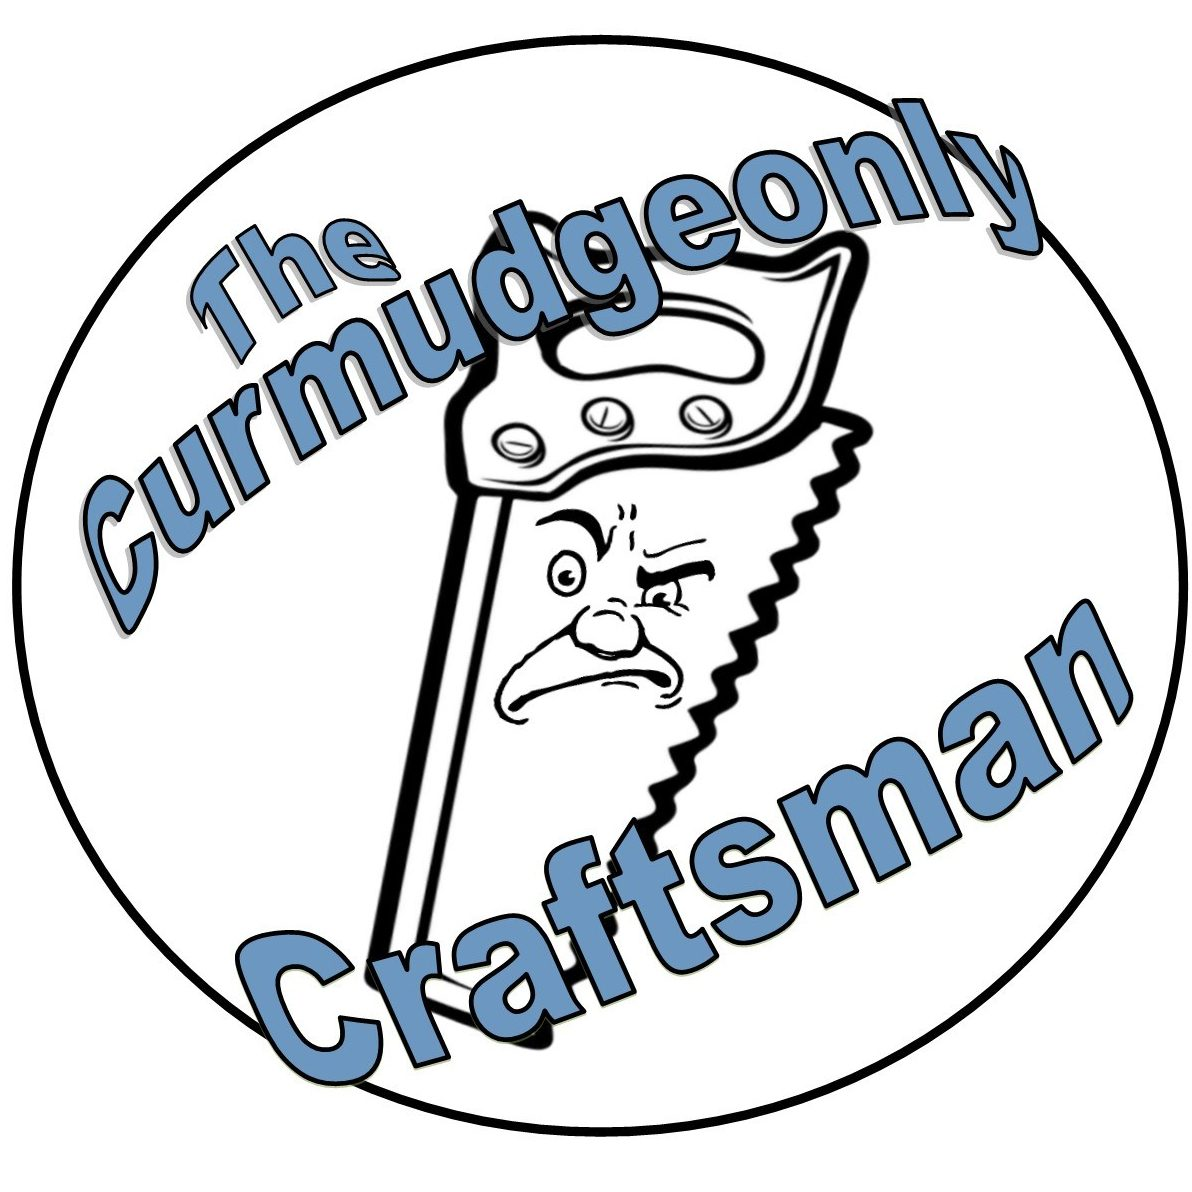 The Curmudgeonly Craftsman